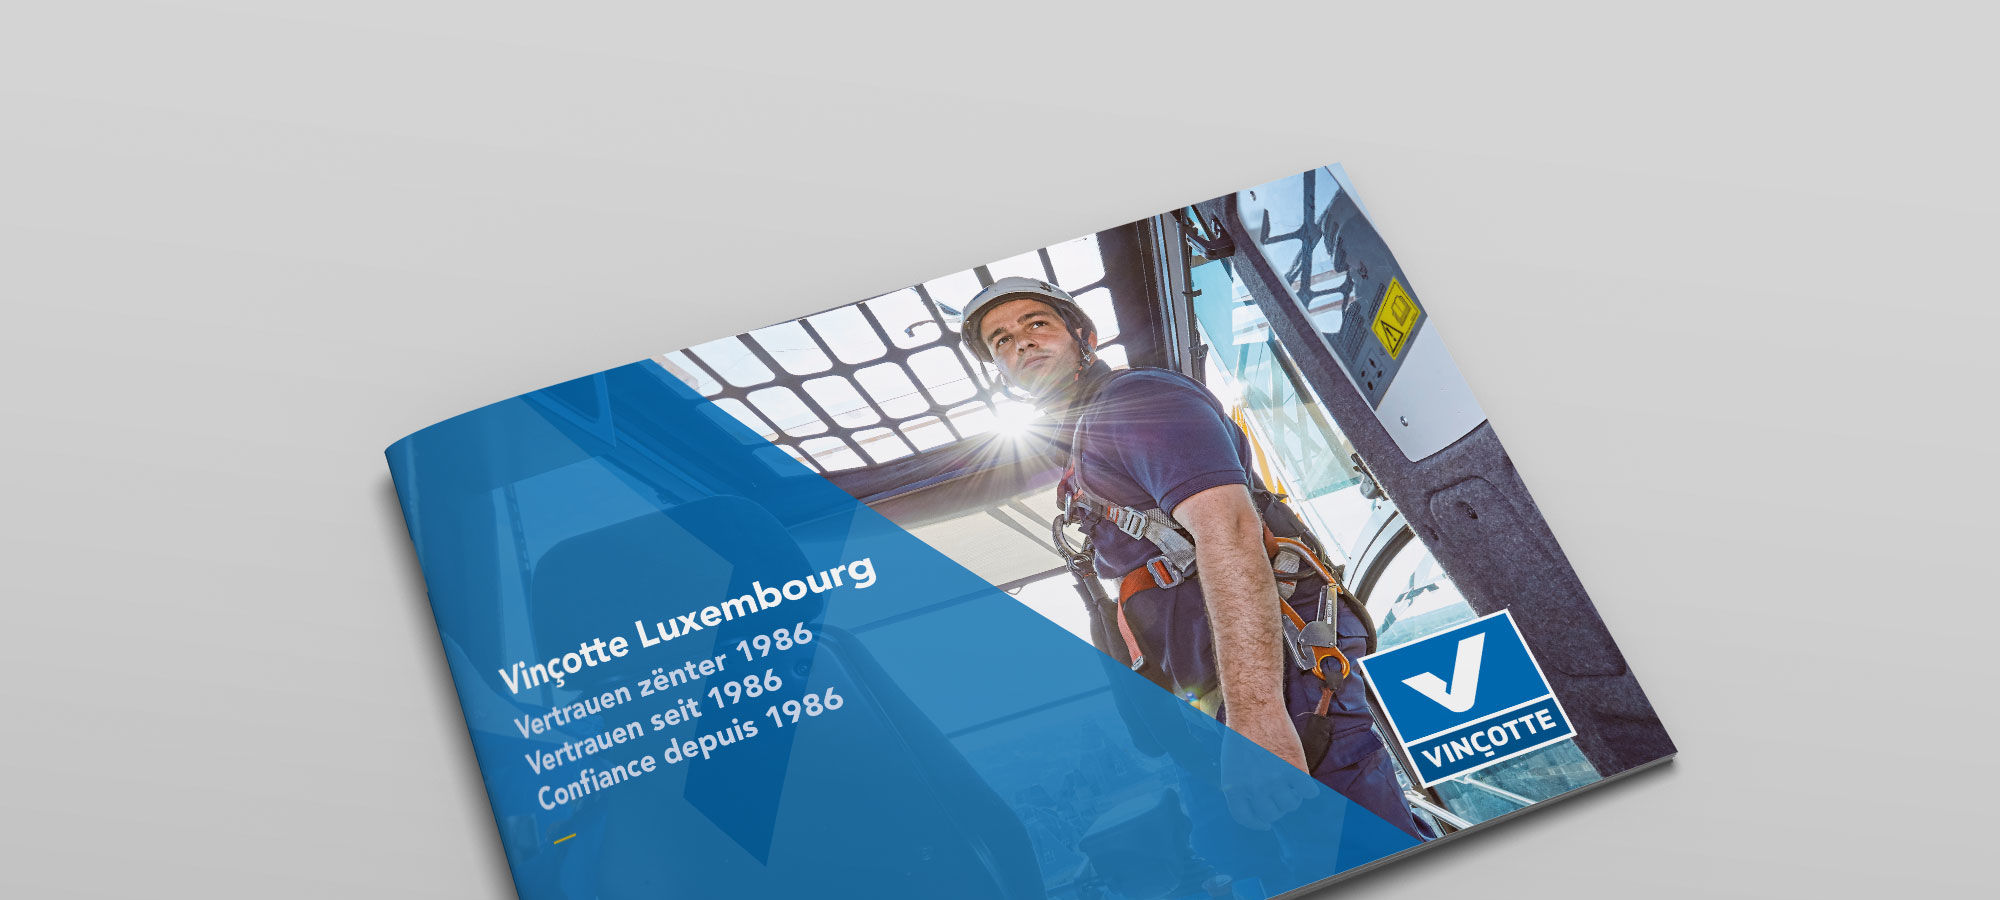 Vincotte Luxembourg Imagebroschuere Cover